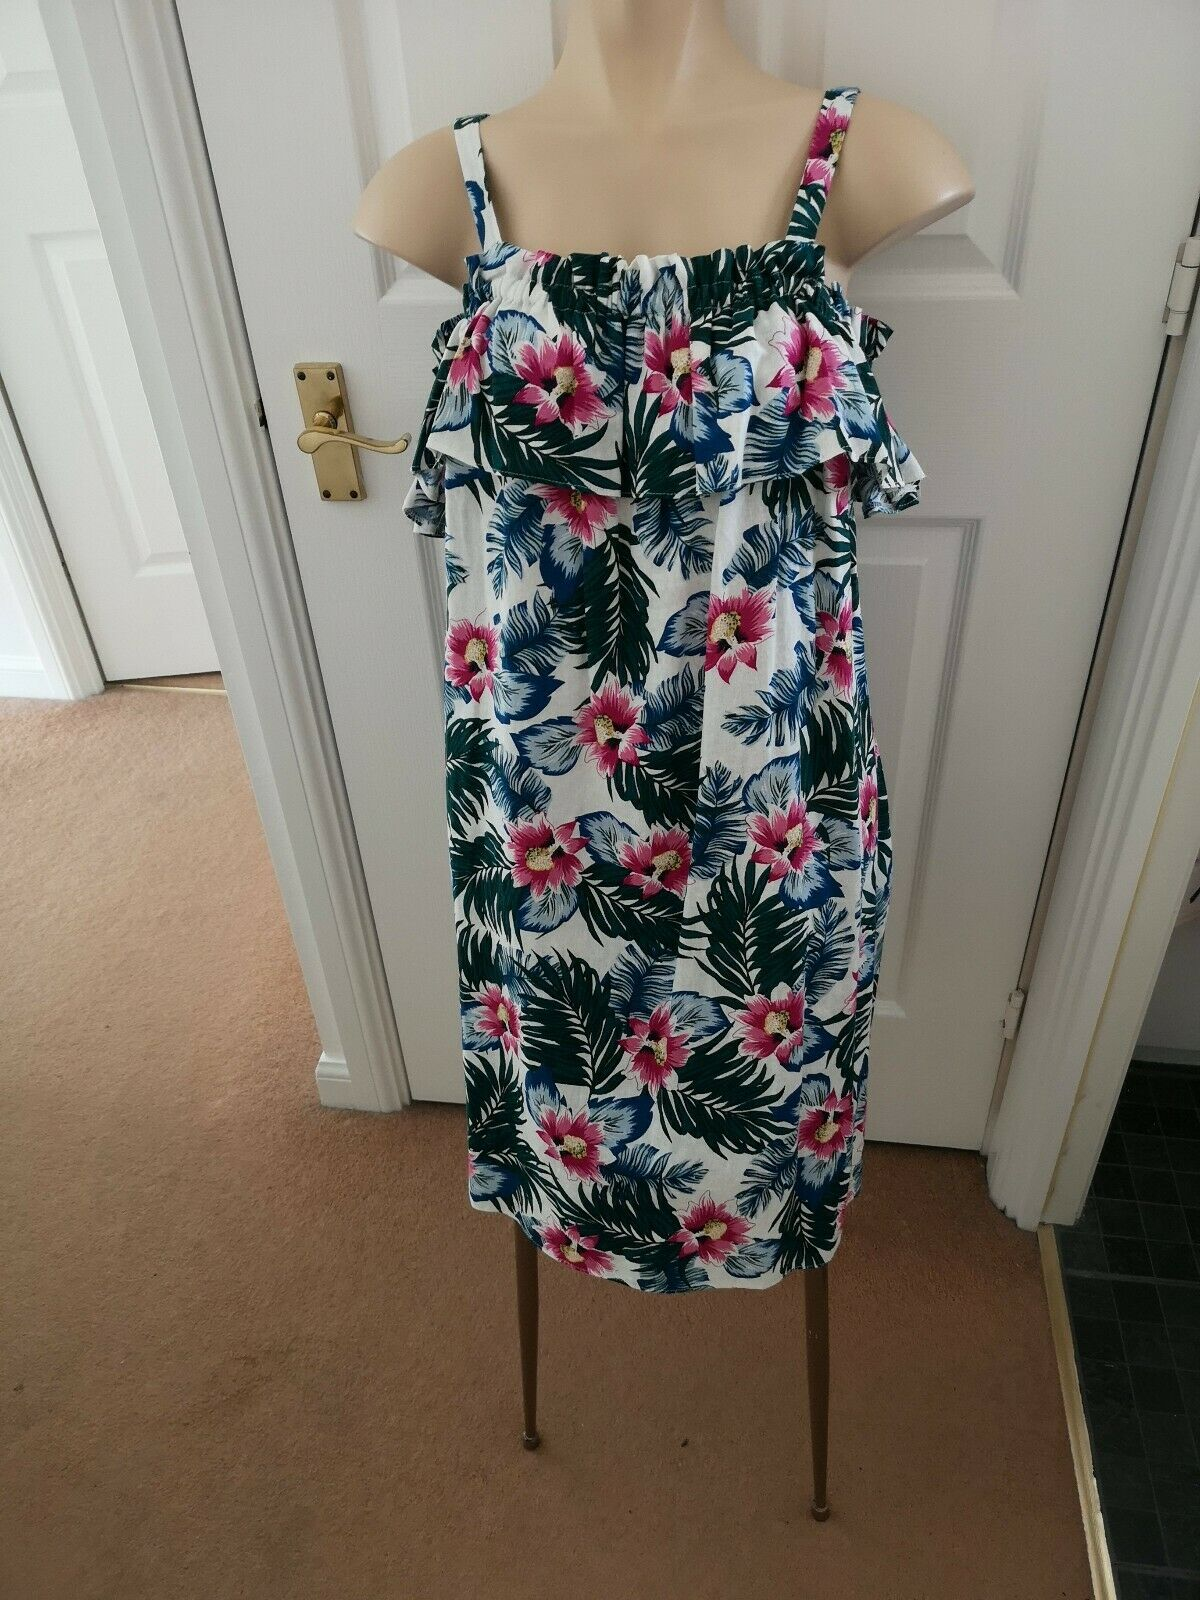 Size 12 Tropical Print Summer Dress new with tags